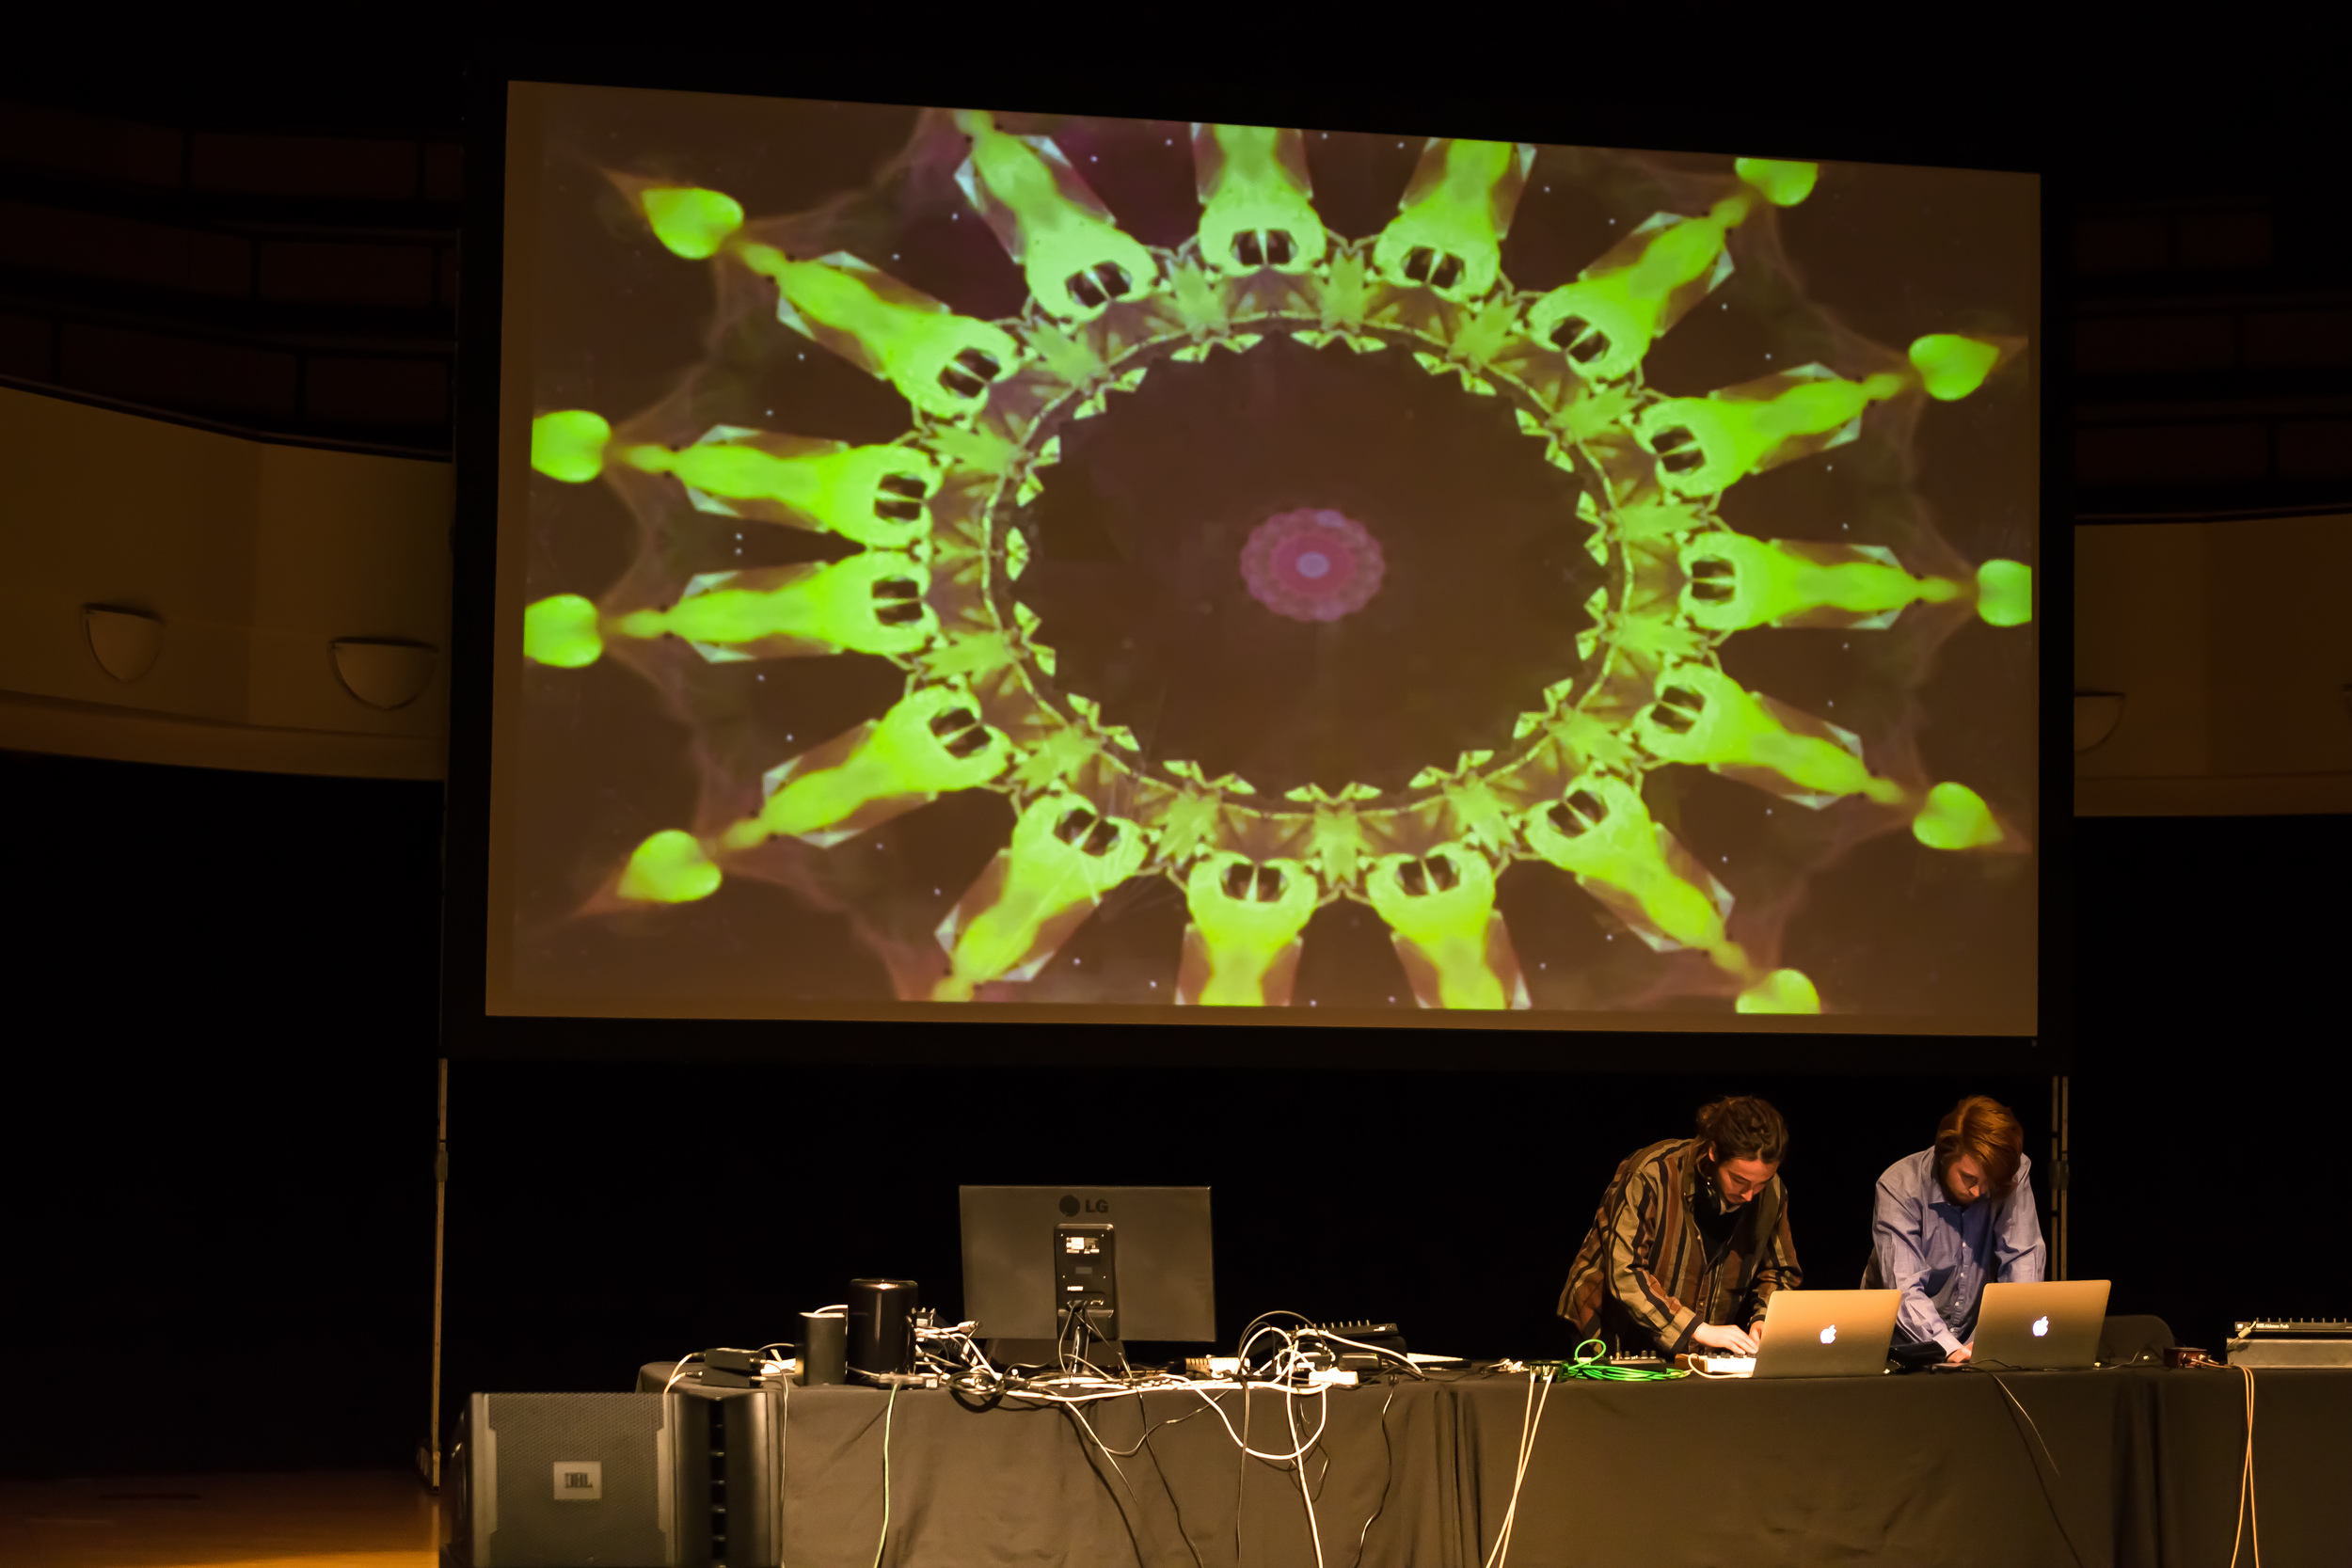 20150319_Art_Gallery_Iron_Pour_Lecture_Electronicatopia_0667.jpg